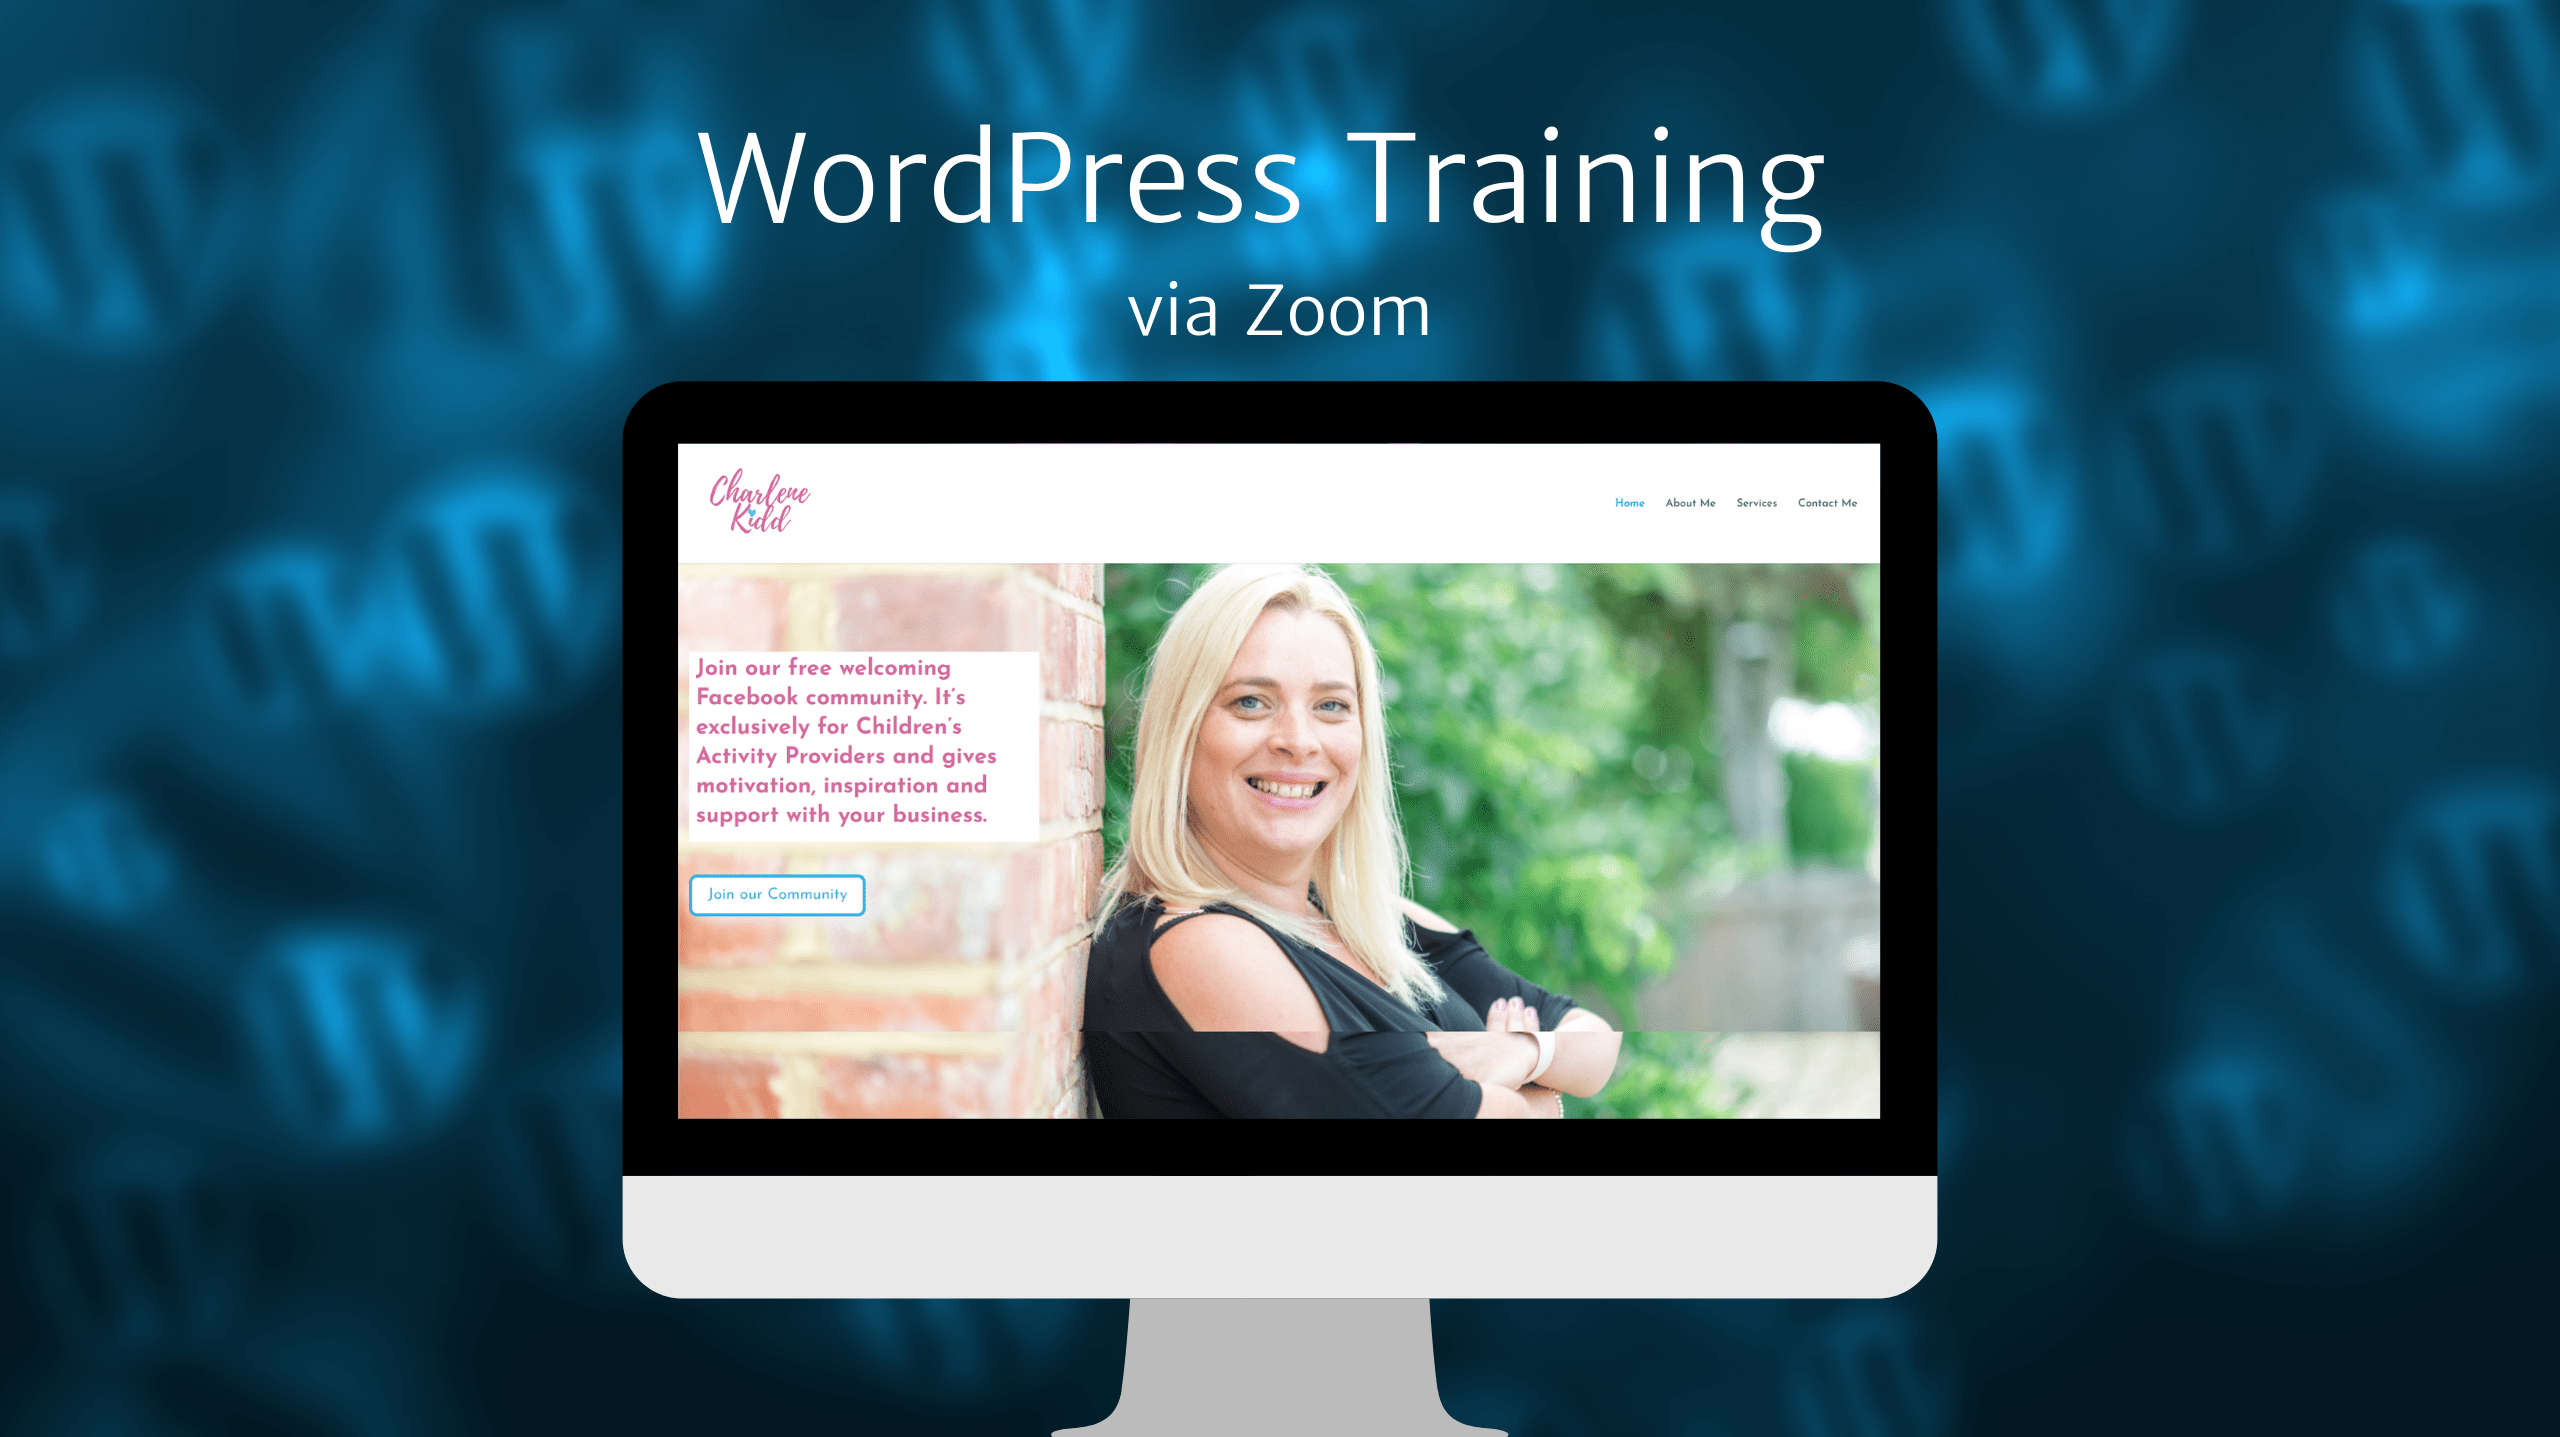 WordPress Training via Zoom